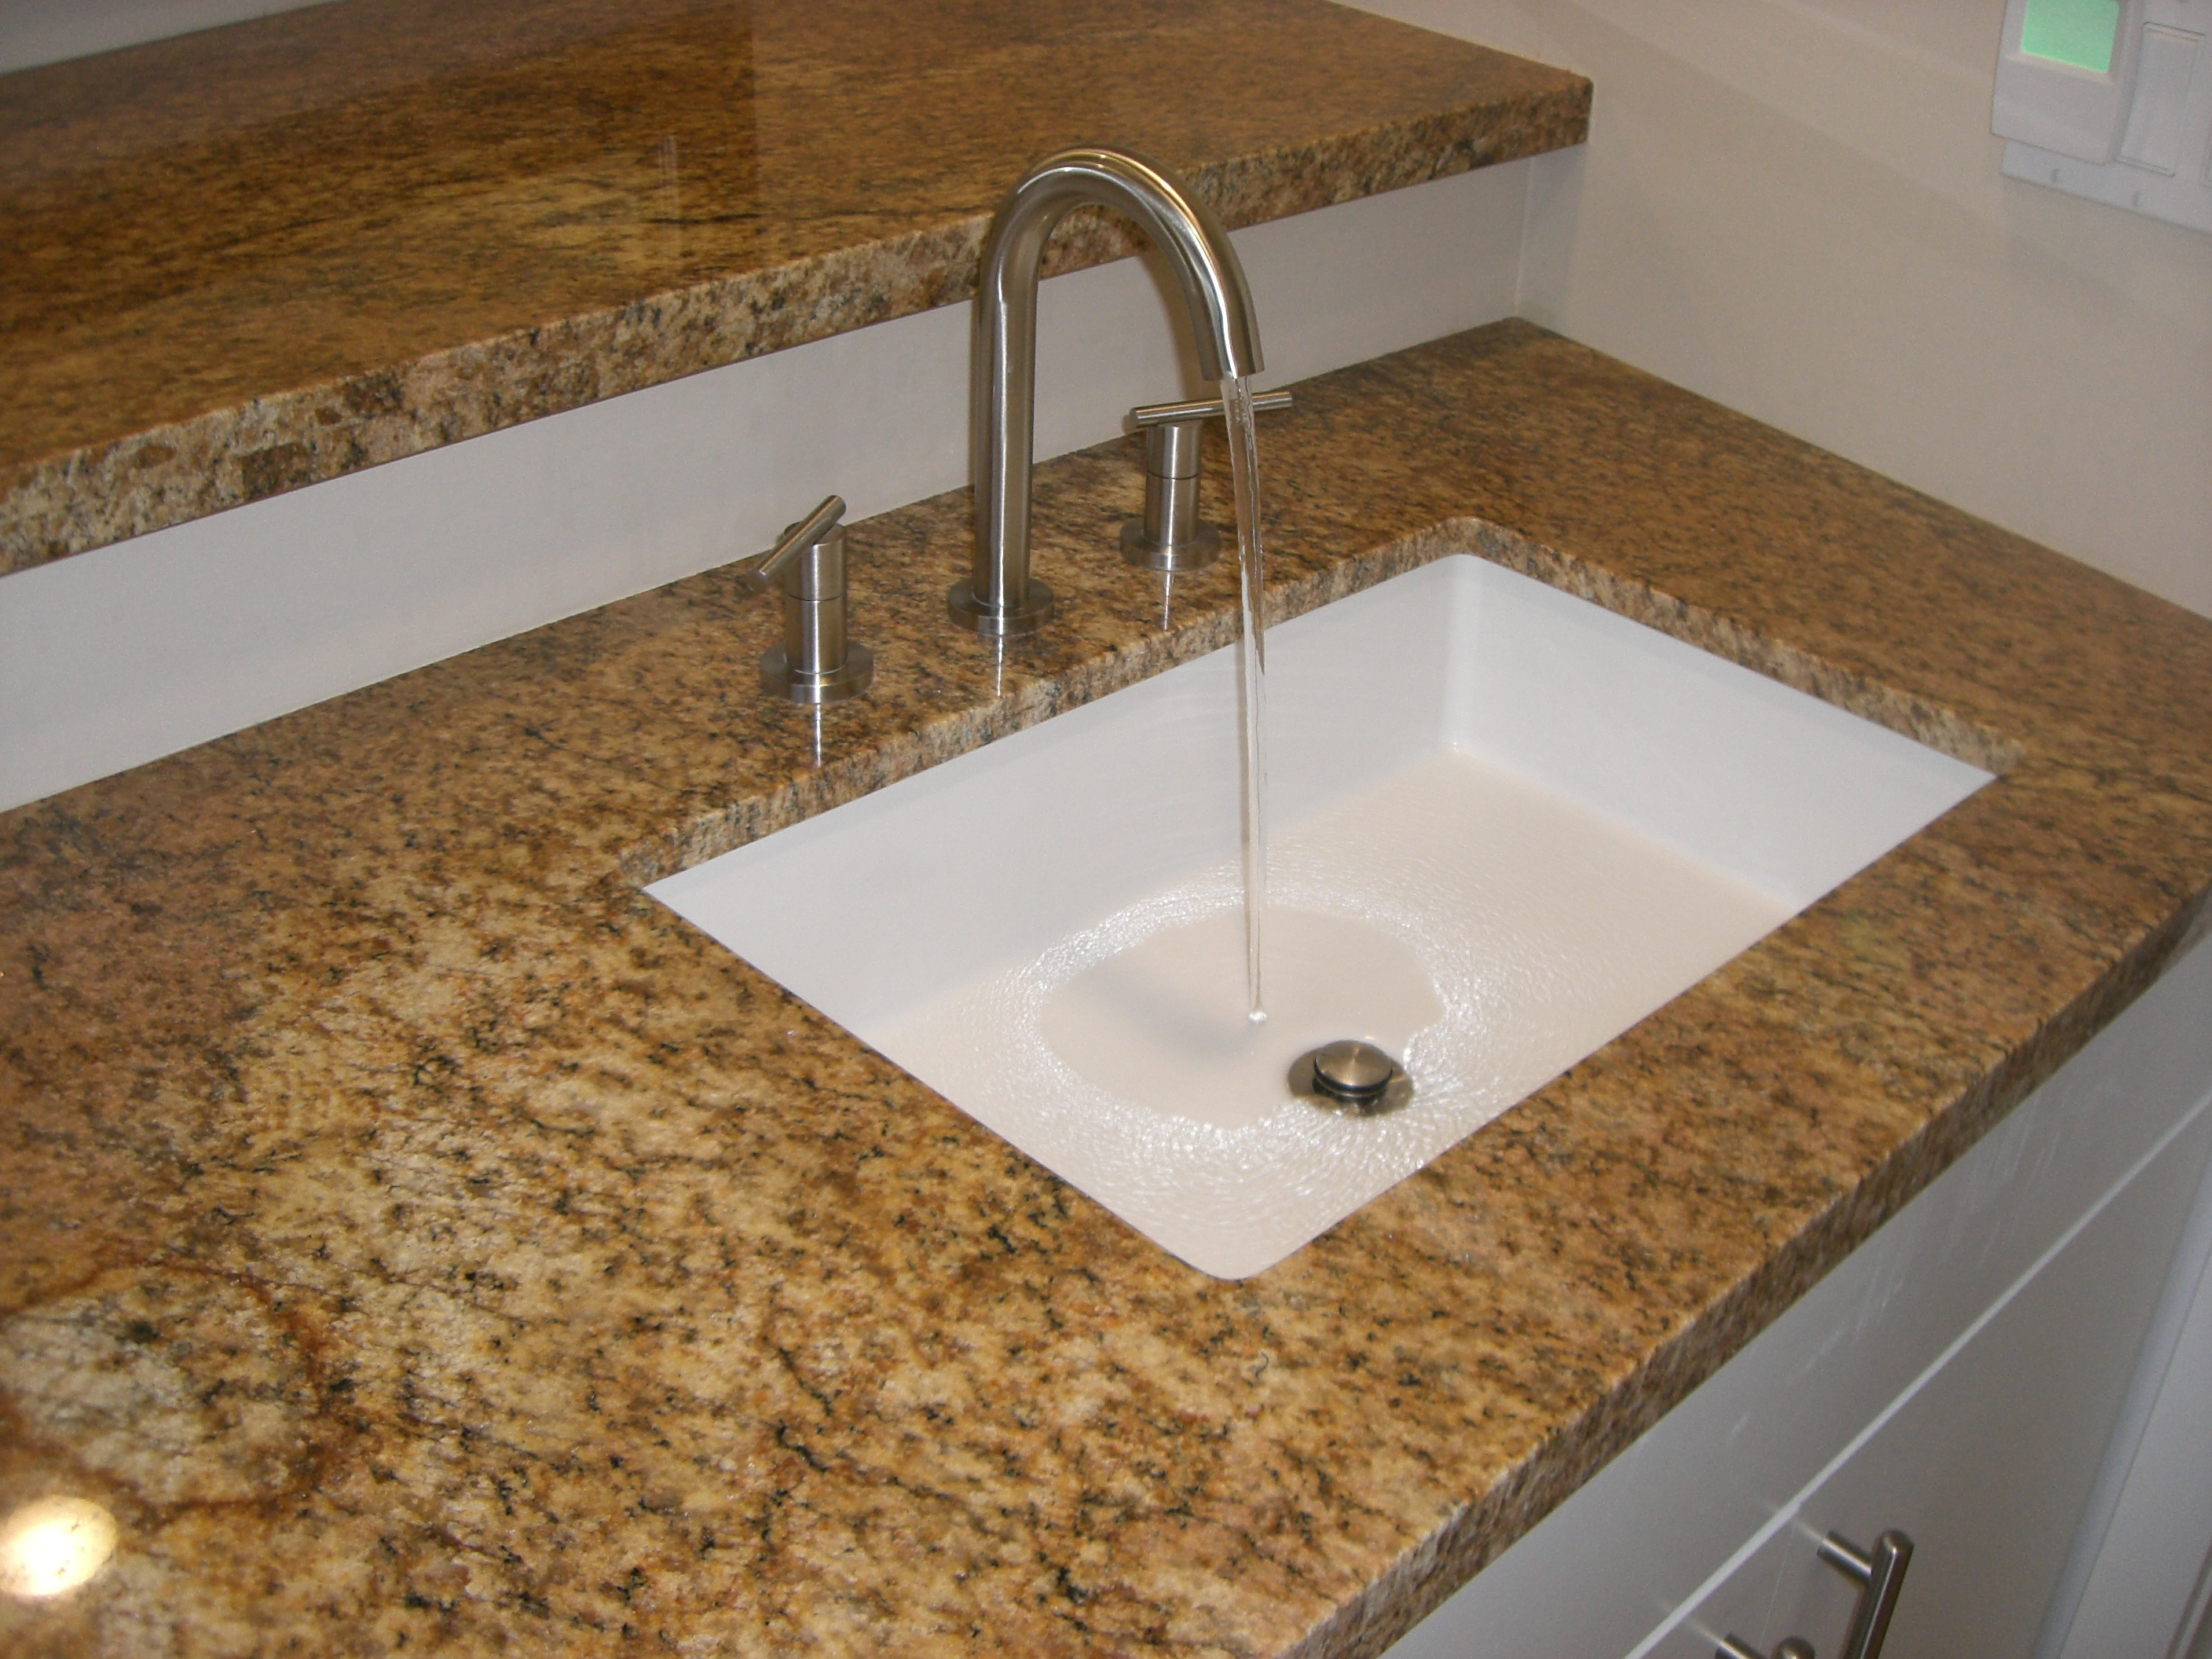 Attractive mirabelle sinks with stainless steel-faucet and granite top for bathroom with mirabelle undermount sink